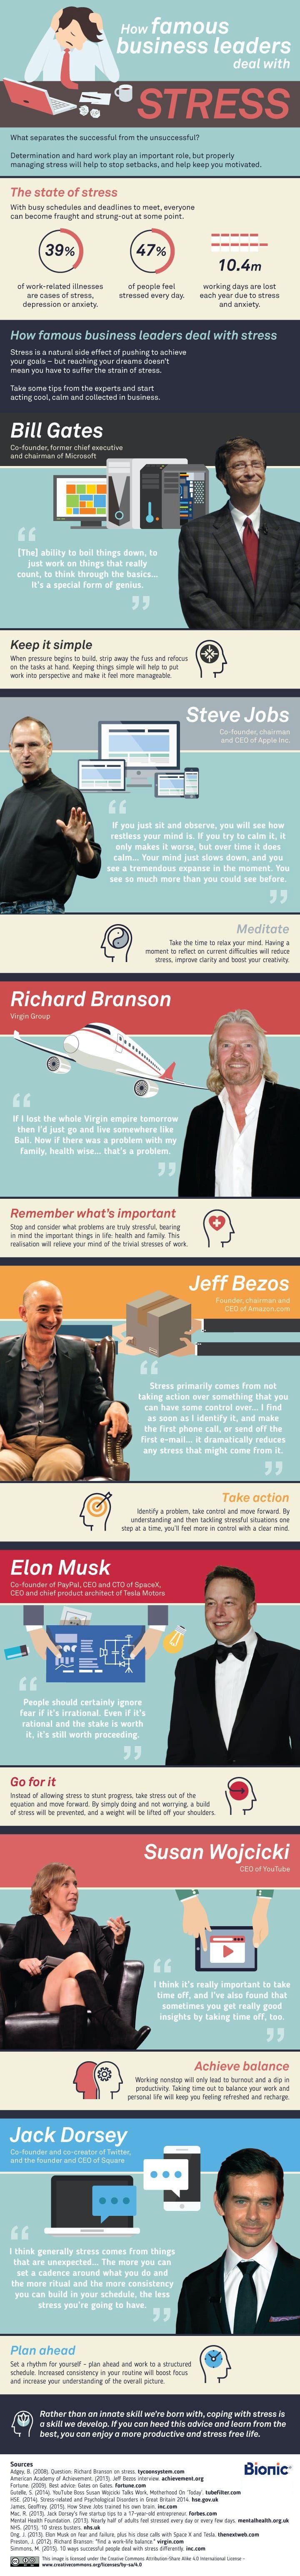 Infographic showing famous business leaders and their tips for dealing with stress